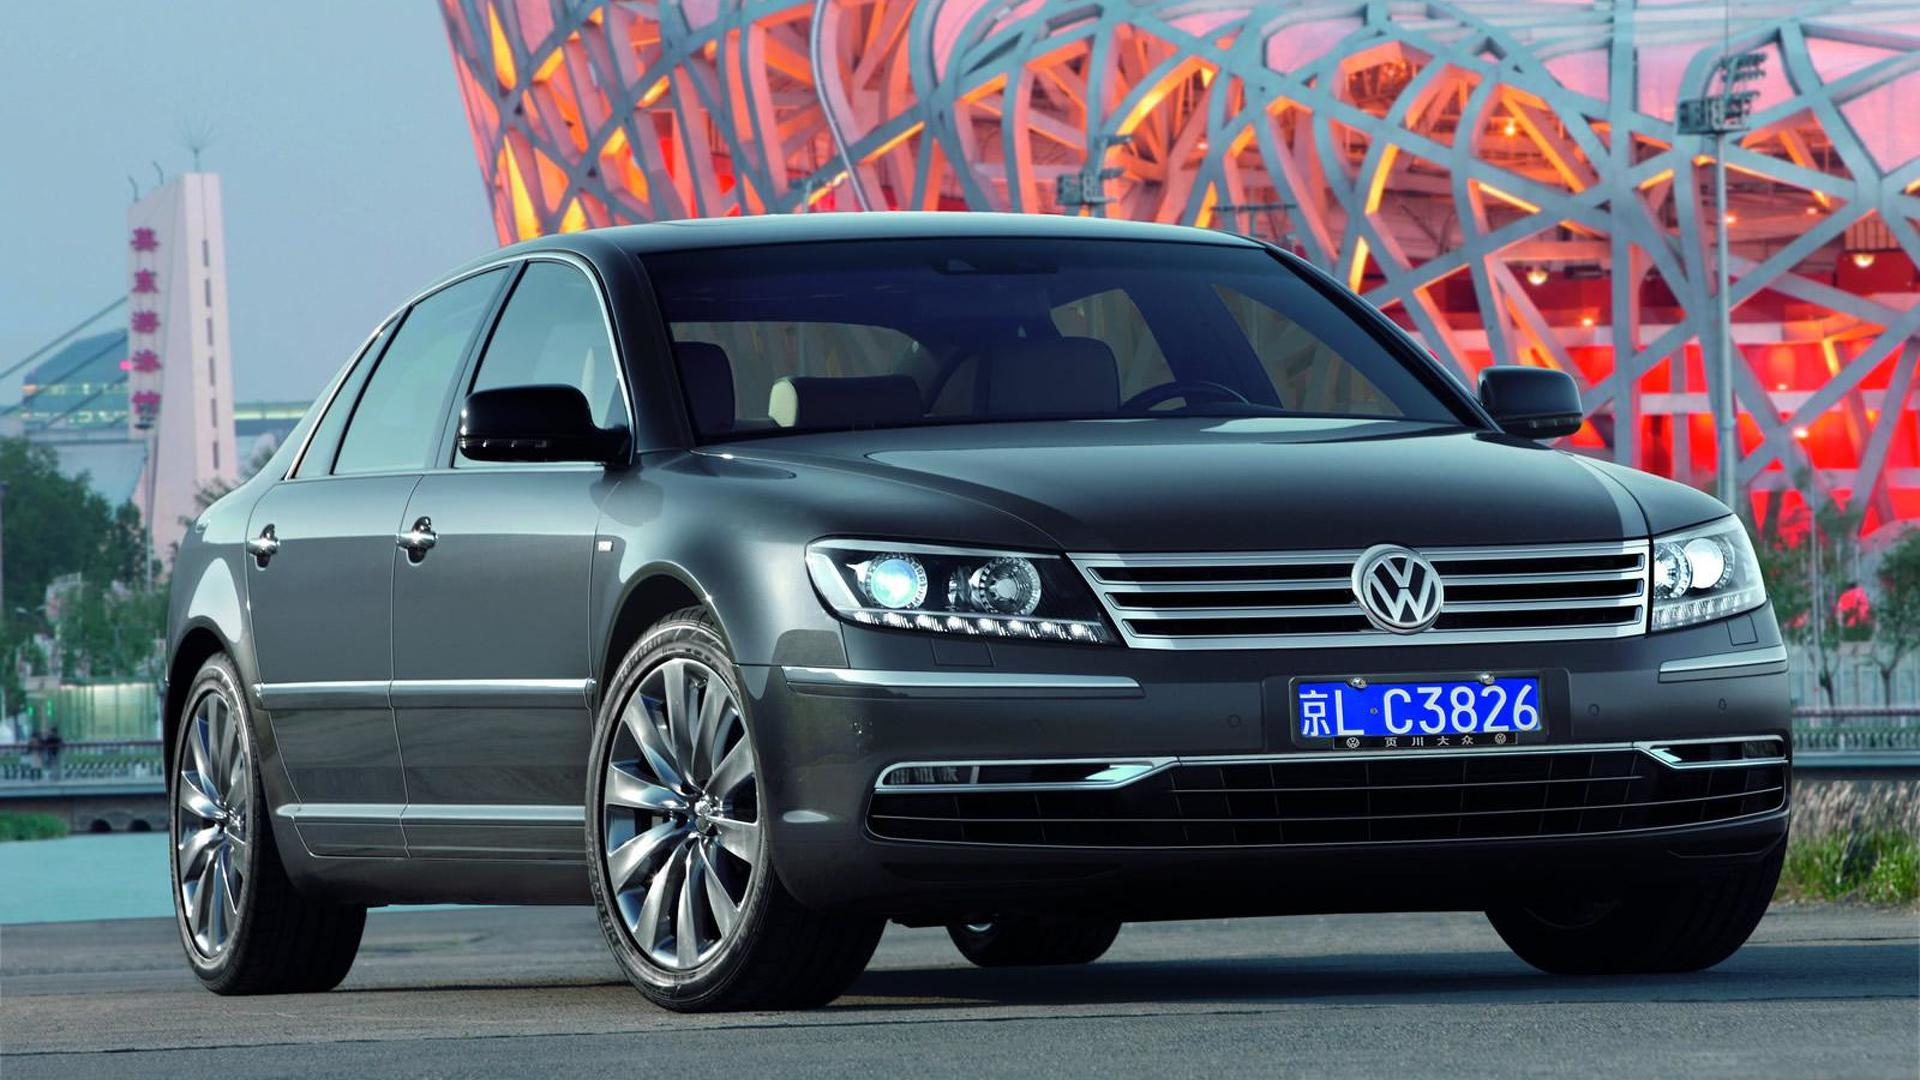 2015 Volkswagen Phaeton to be lighter and more efficient - report